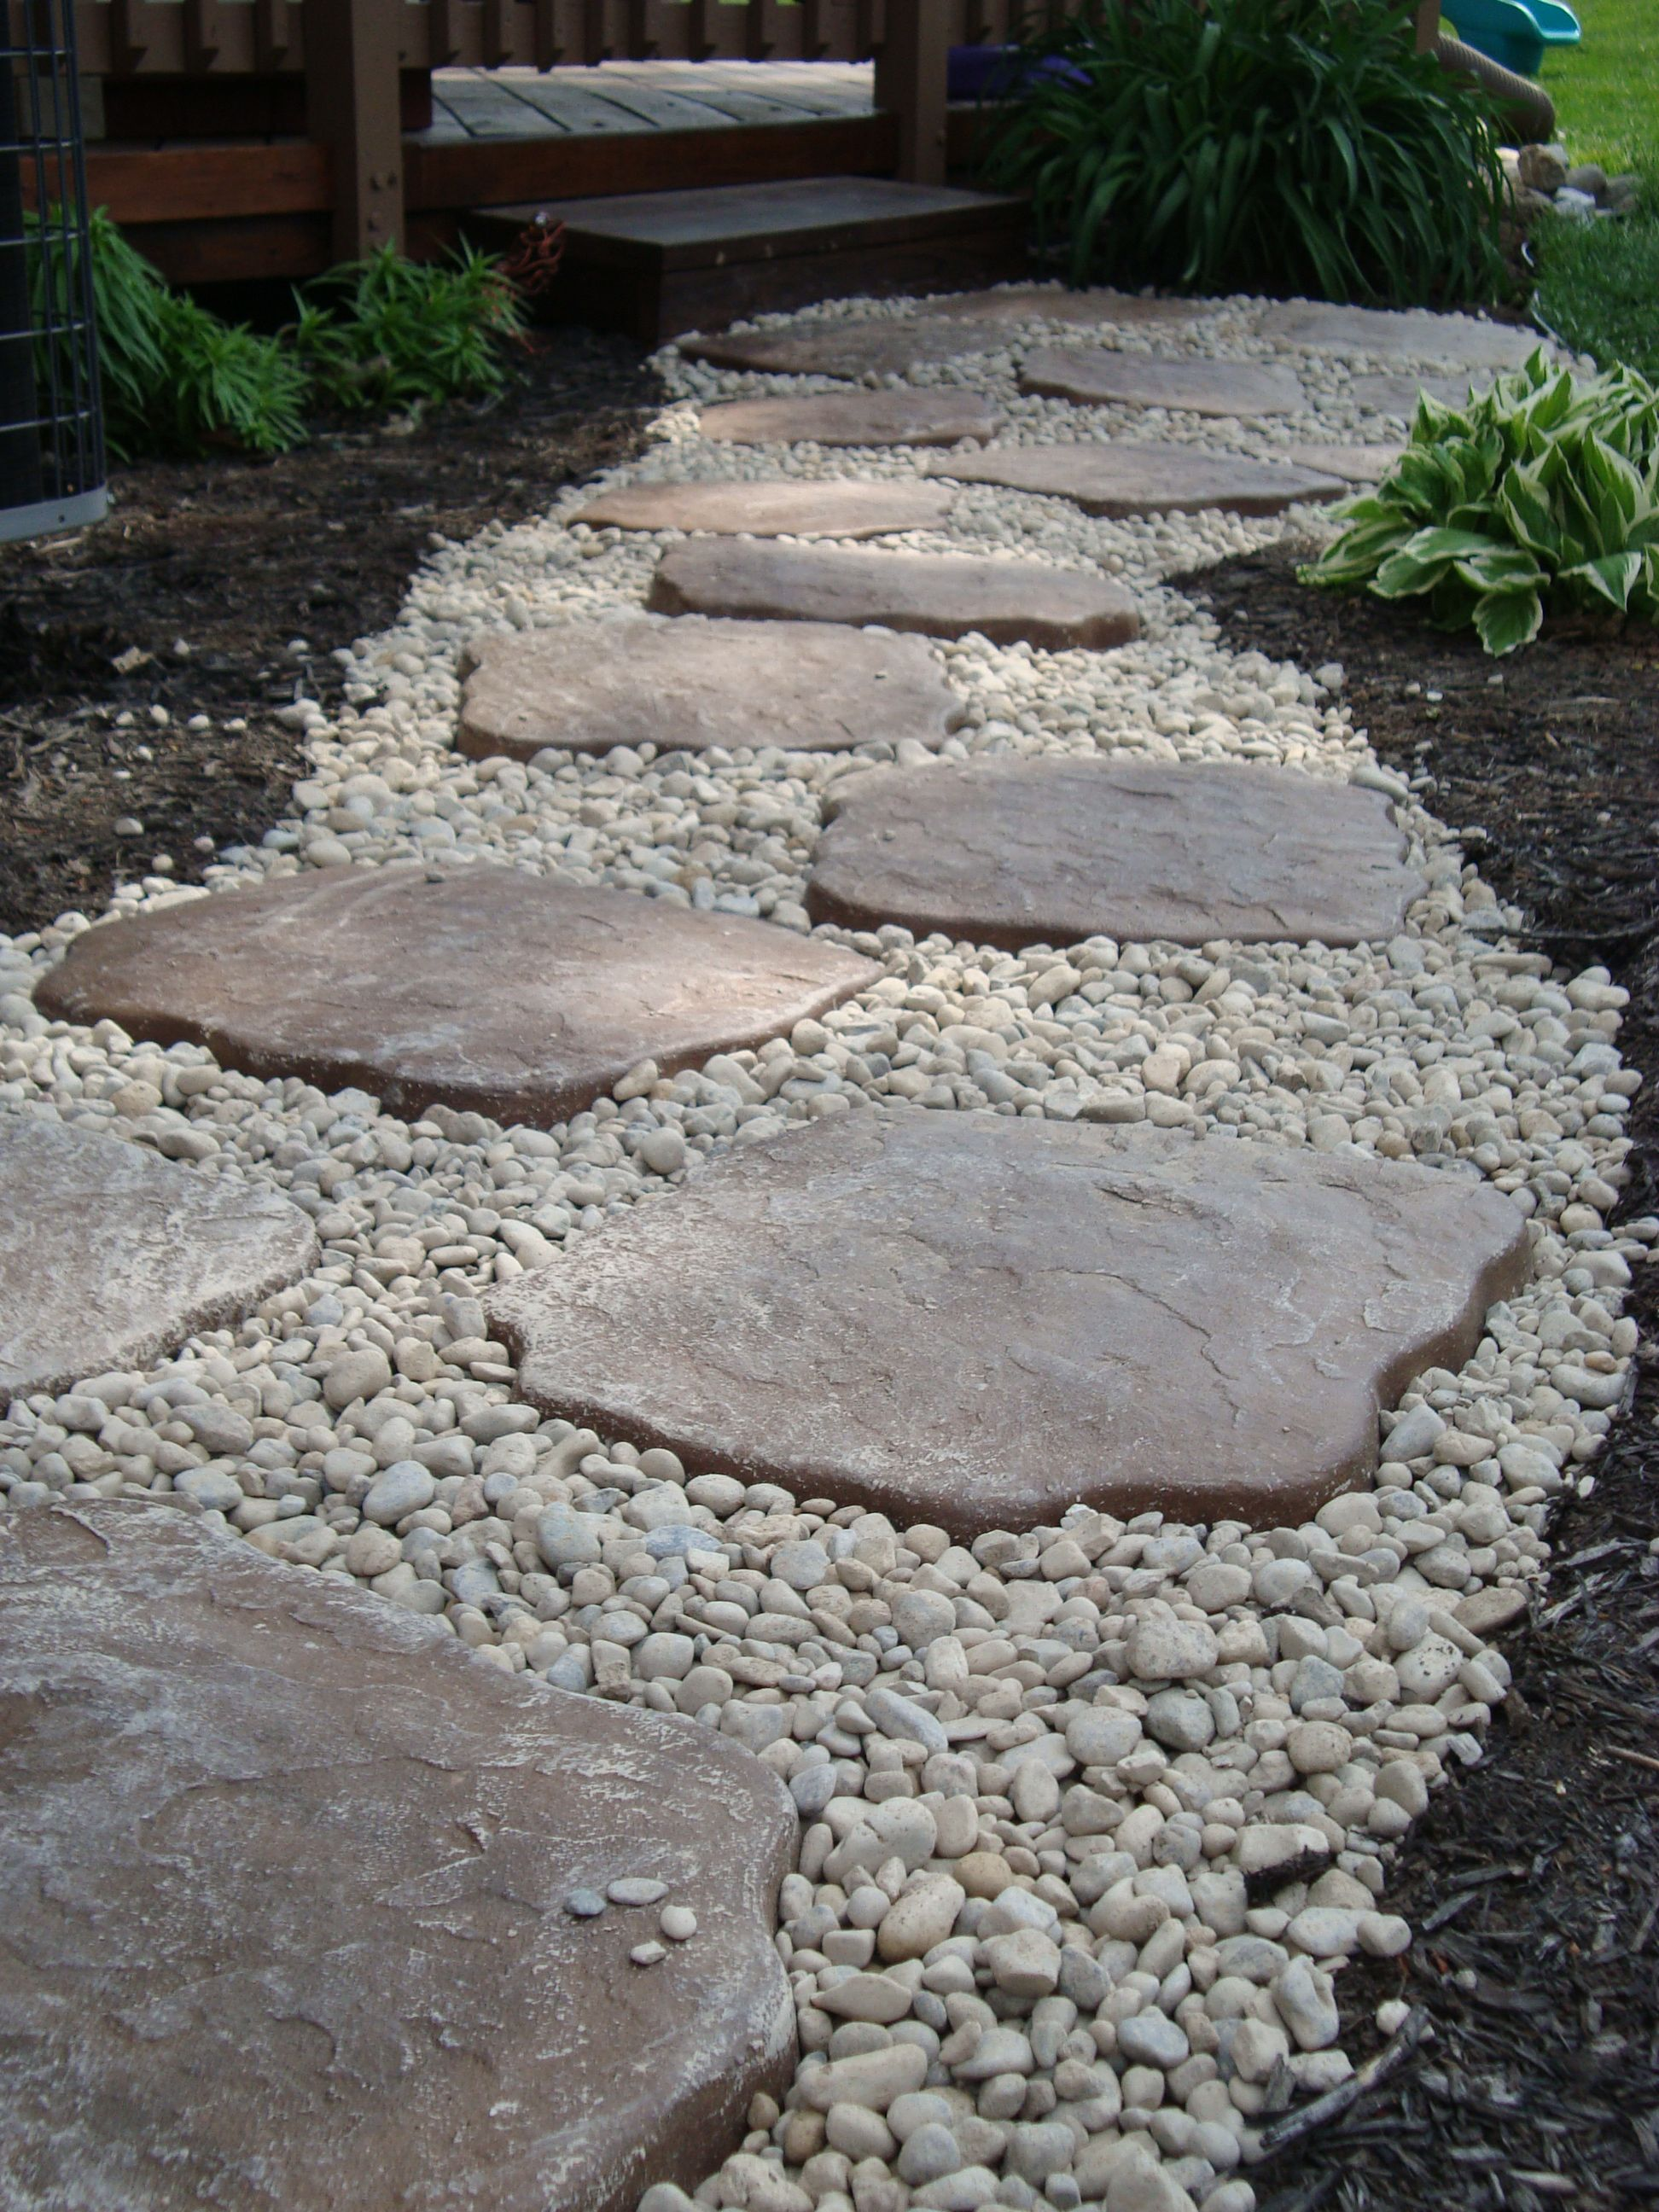 Landscaping i did diy use edging to contain small river for Installing river rock landscaping